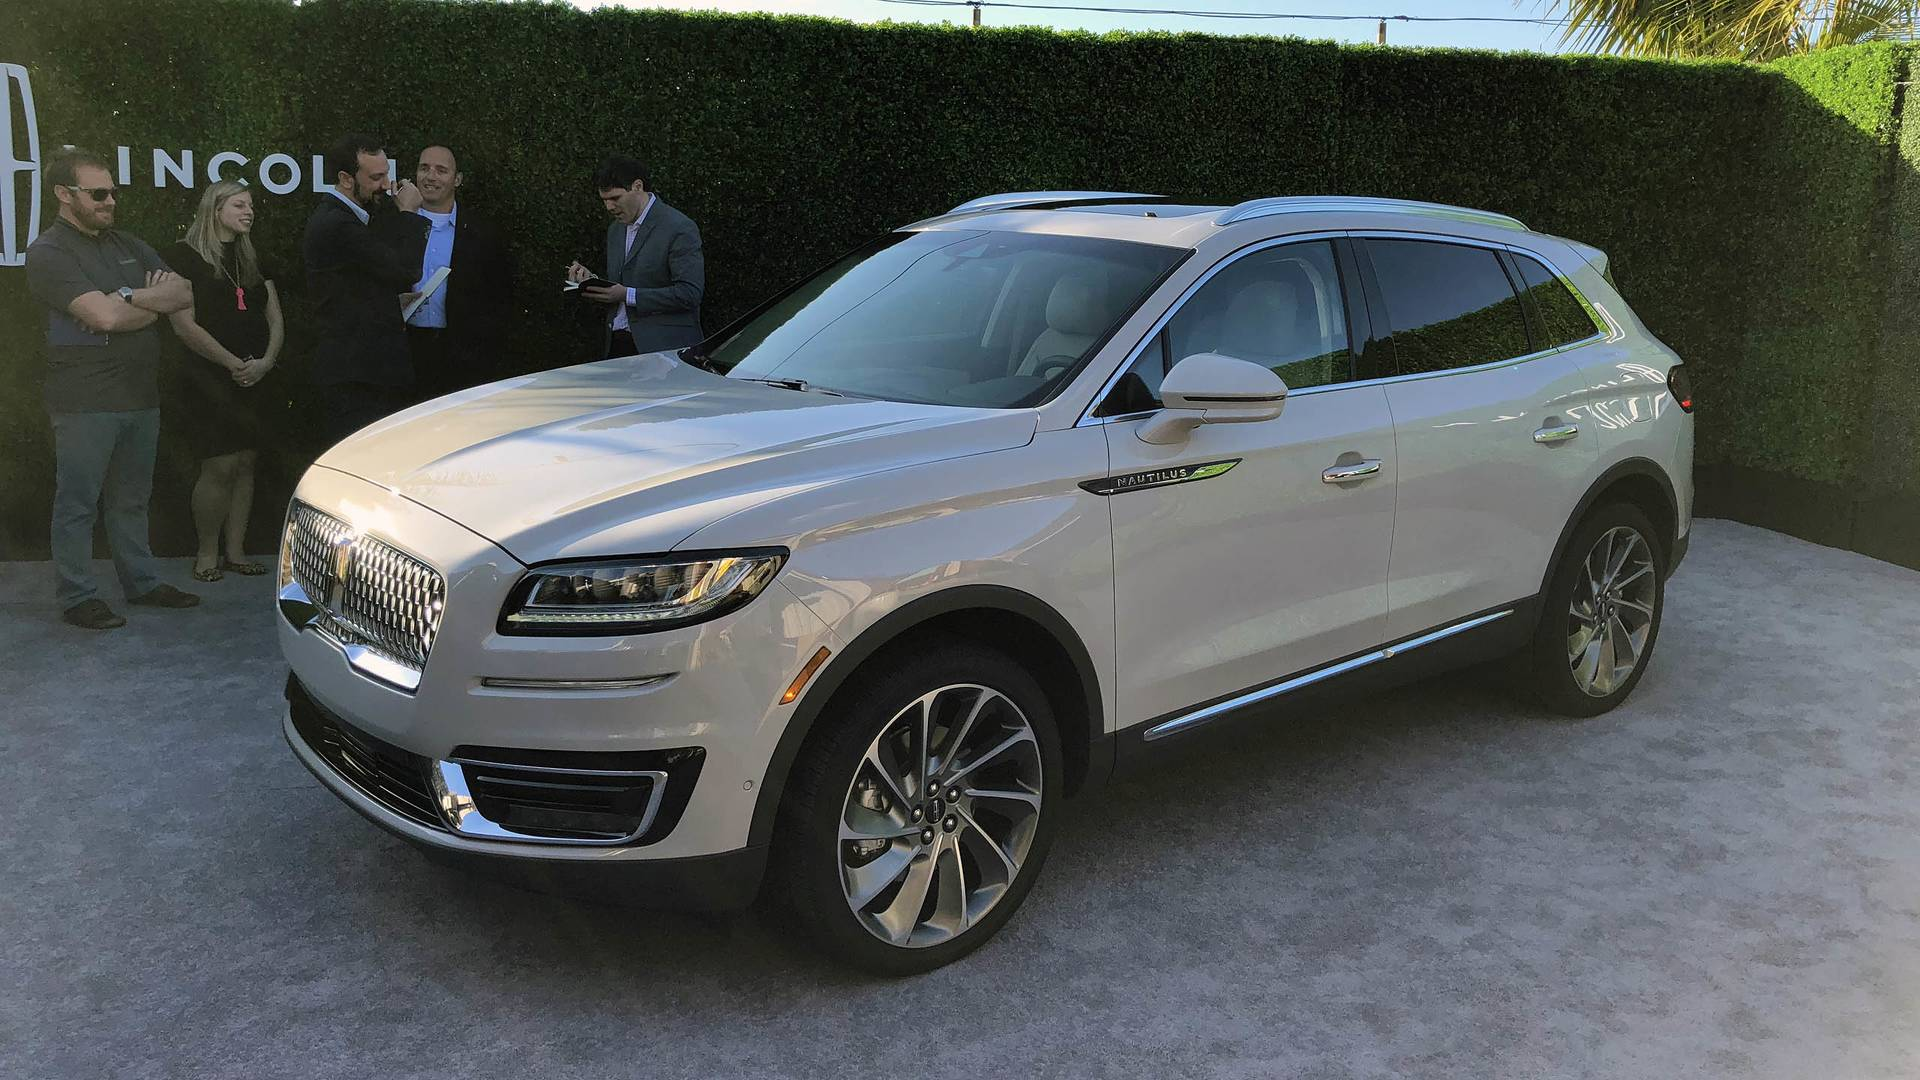 2019 Lincoln MKX: New Name, New Styling, Tech, Interior And Updated Powertrains >> 2019 Lincoln Nautilus Picks Up Where Mkx Left Off